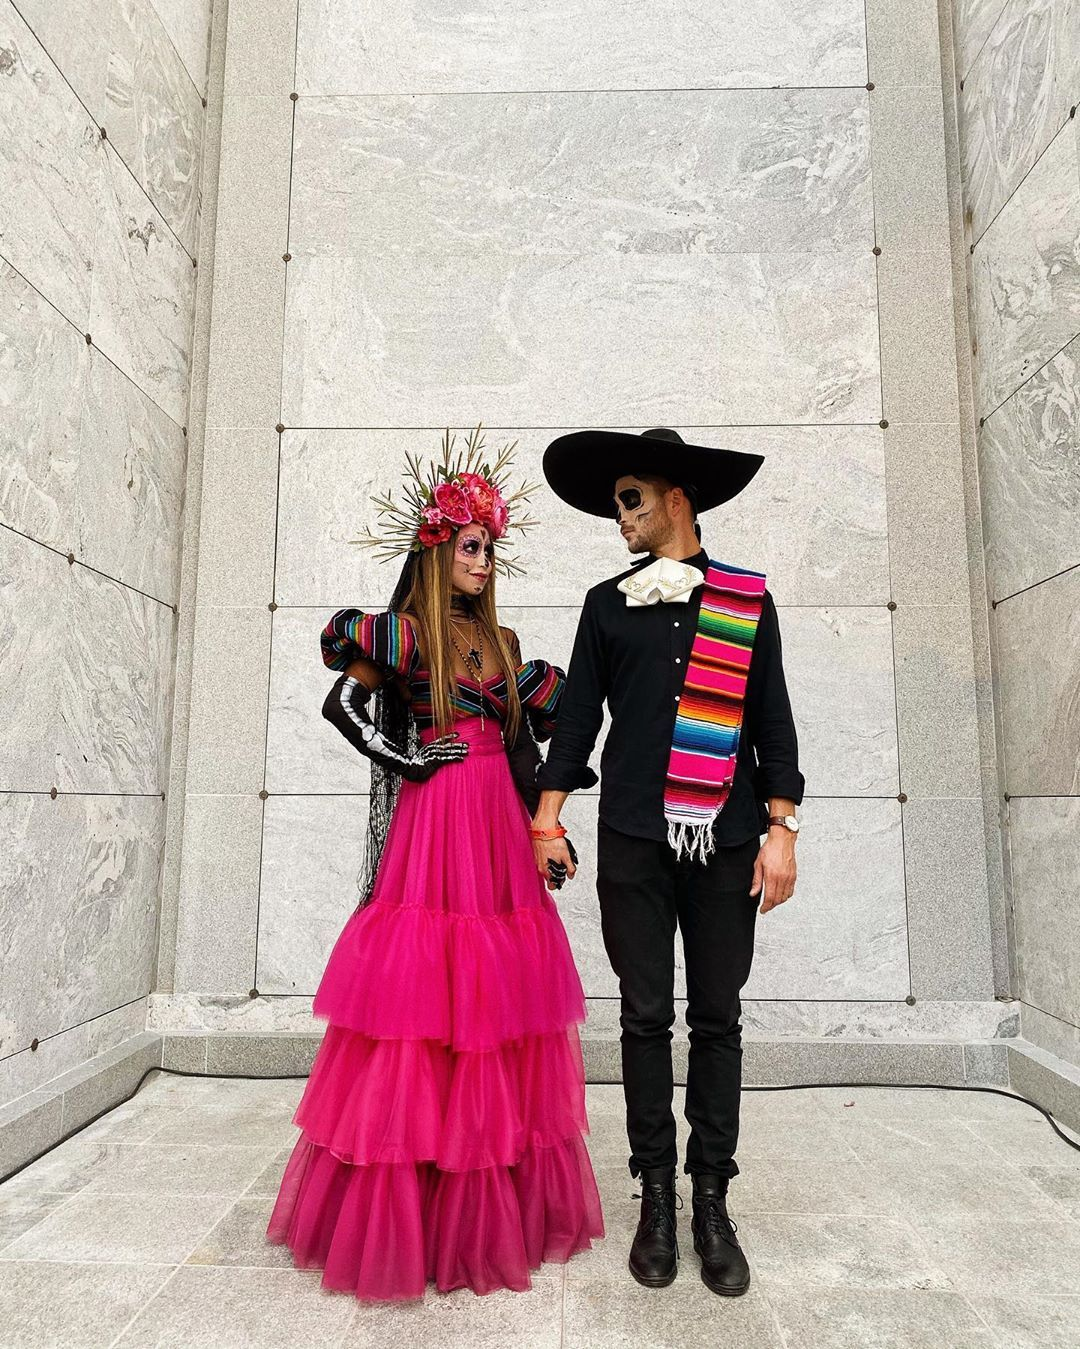 Mexican Halloween Day Of The Dead 2020 One way people celebrate Día de los Muertos or Day of the Dead is